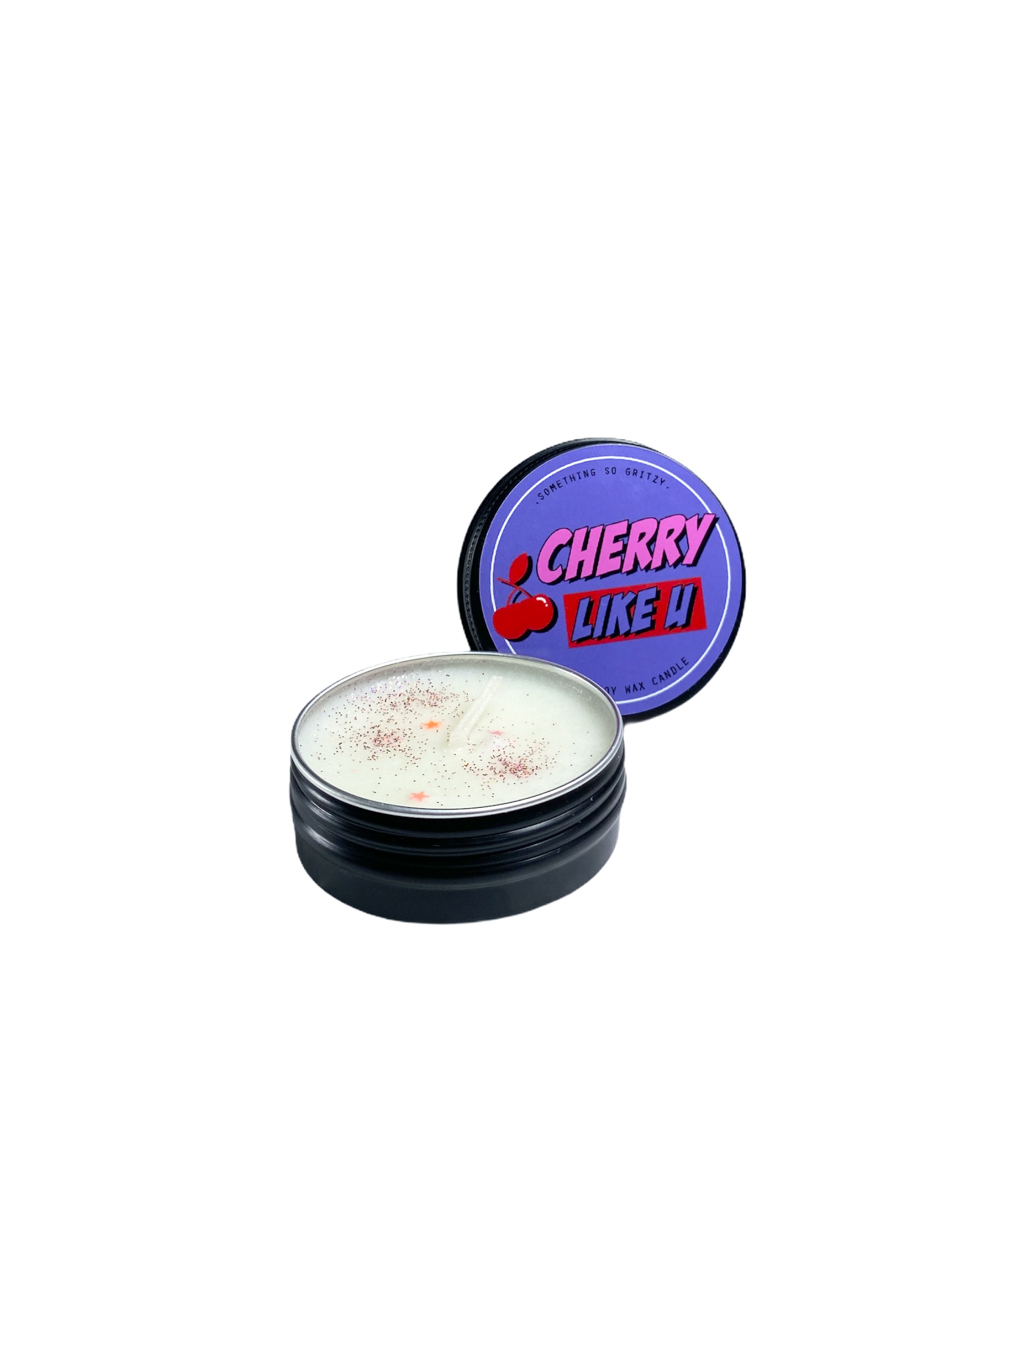 Cherry Like You Soy Wax Candle